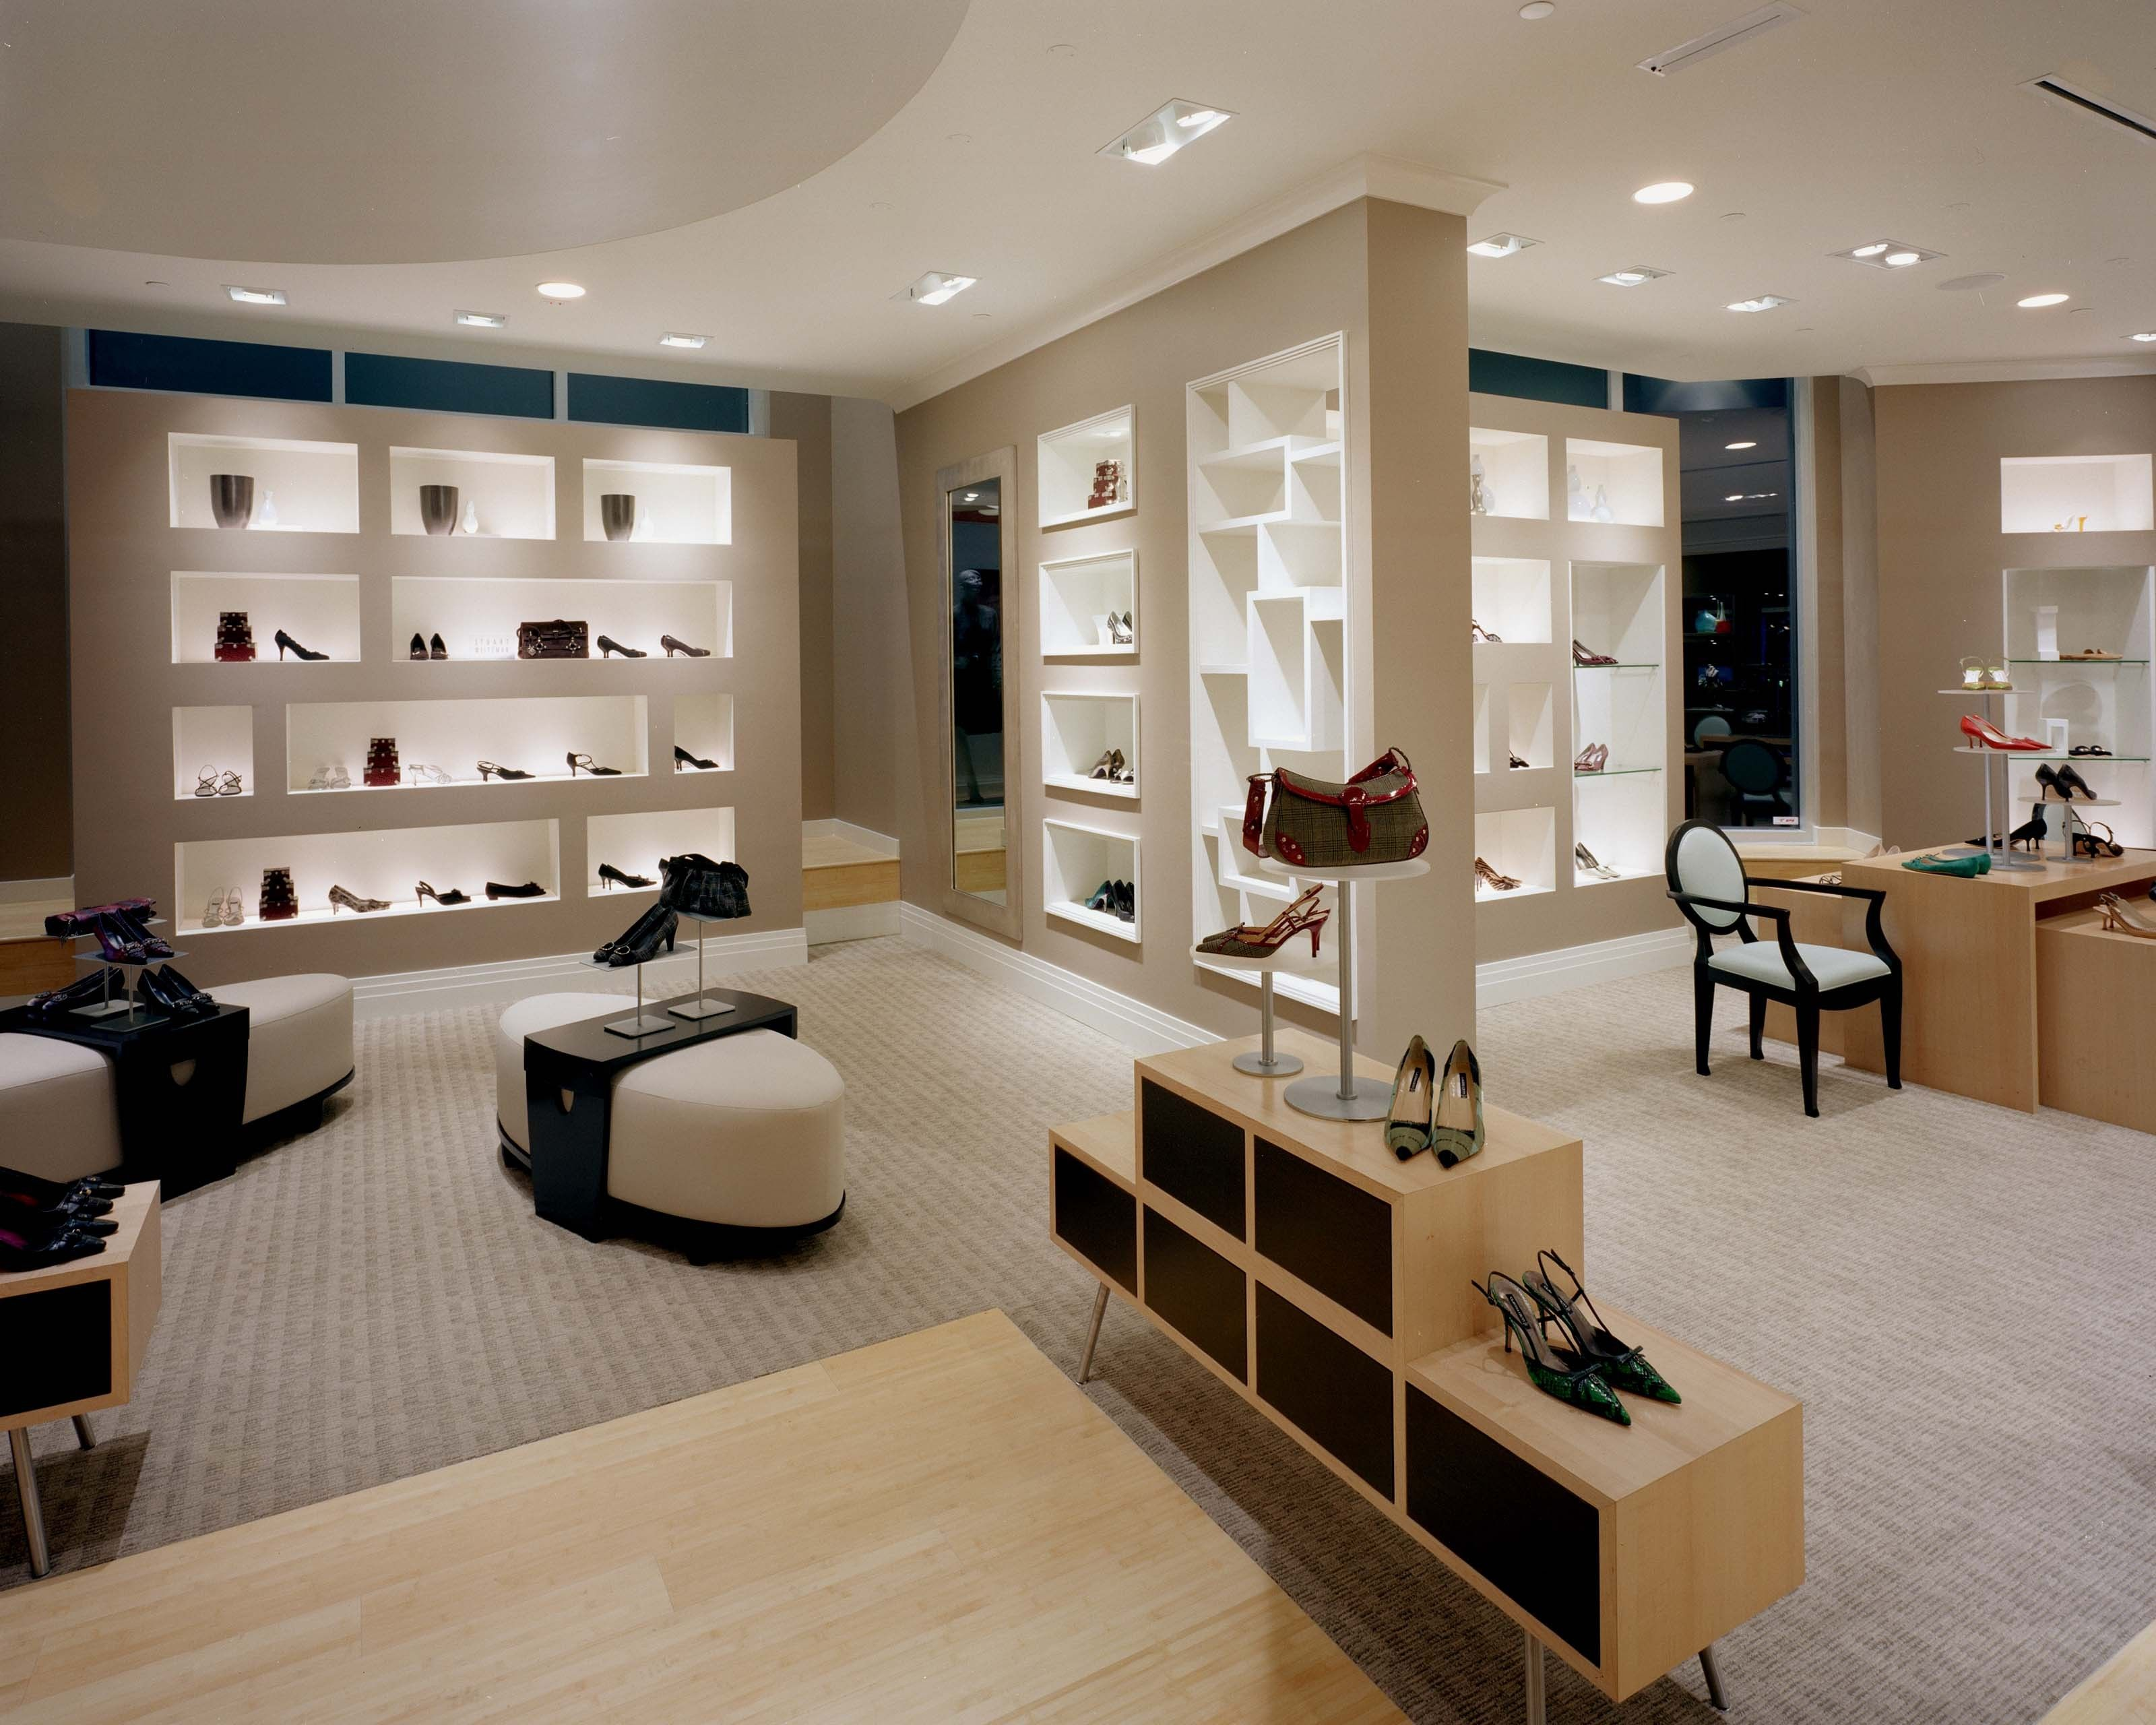 15 tips for how to design your retail store business - Interior design for retail stores ...